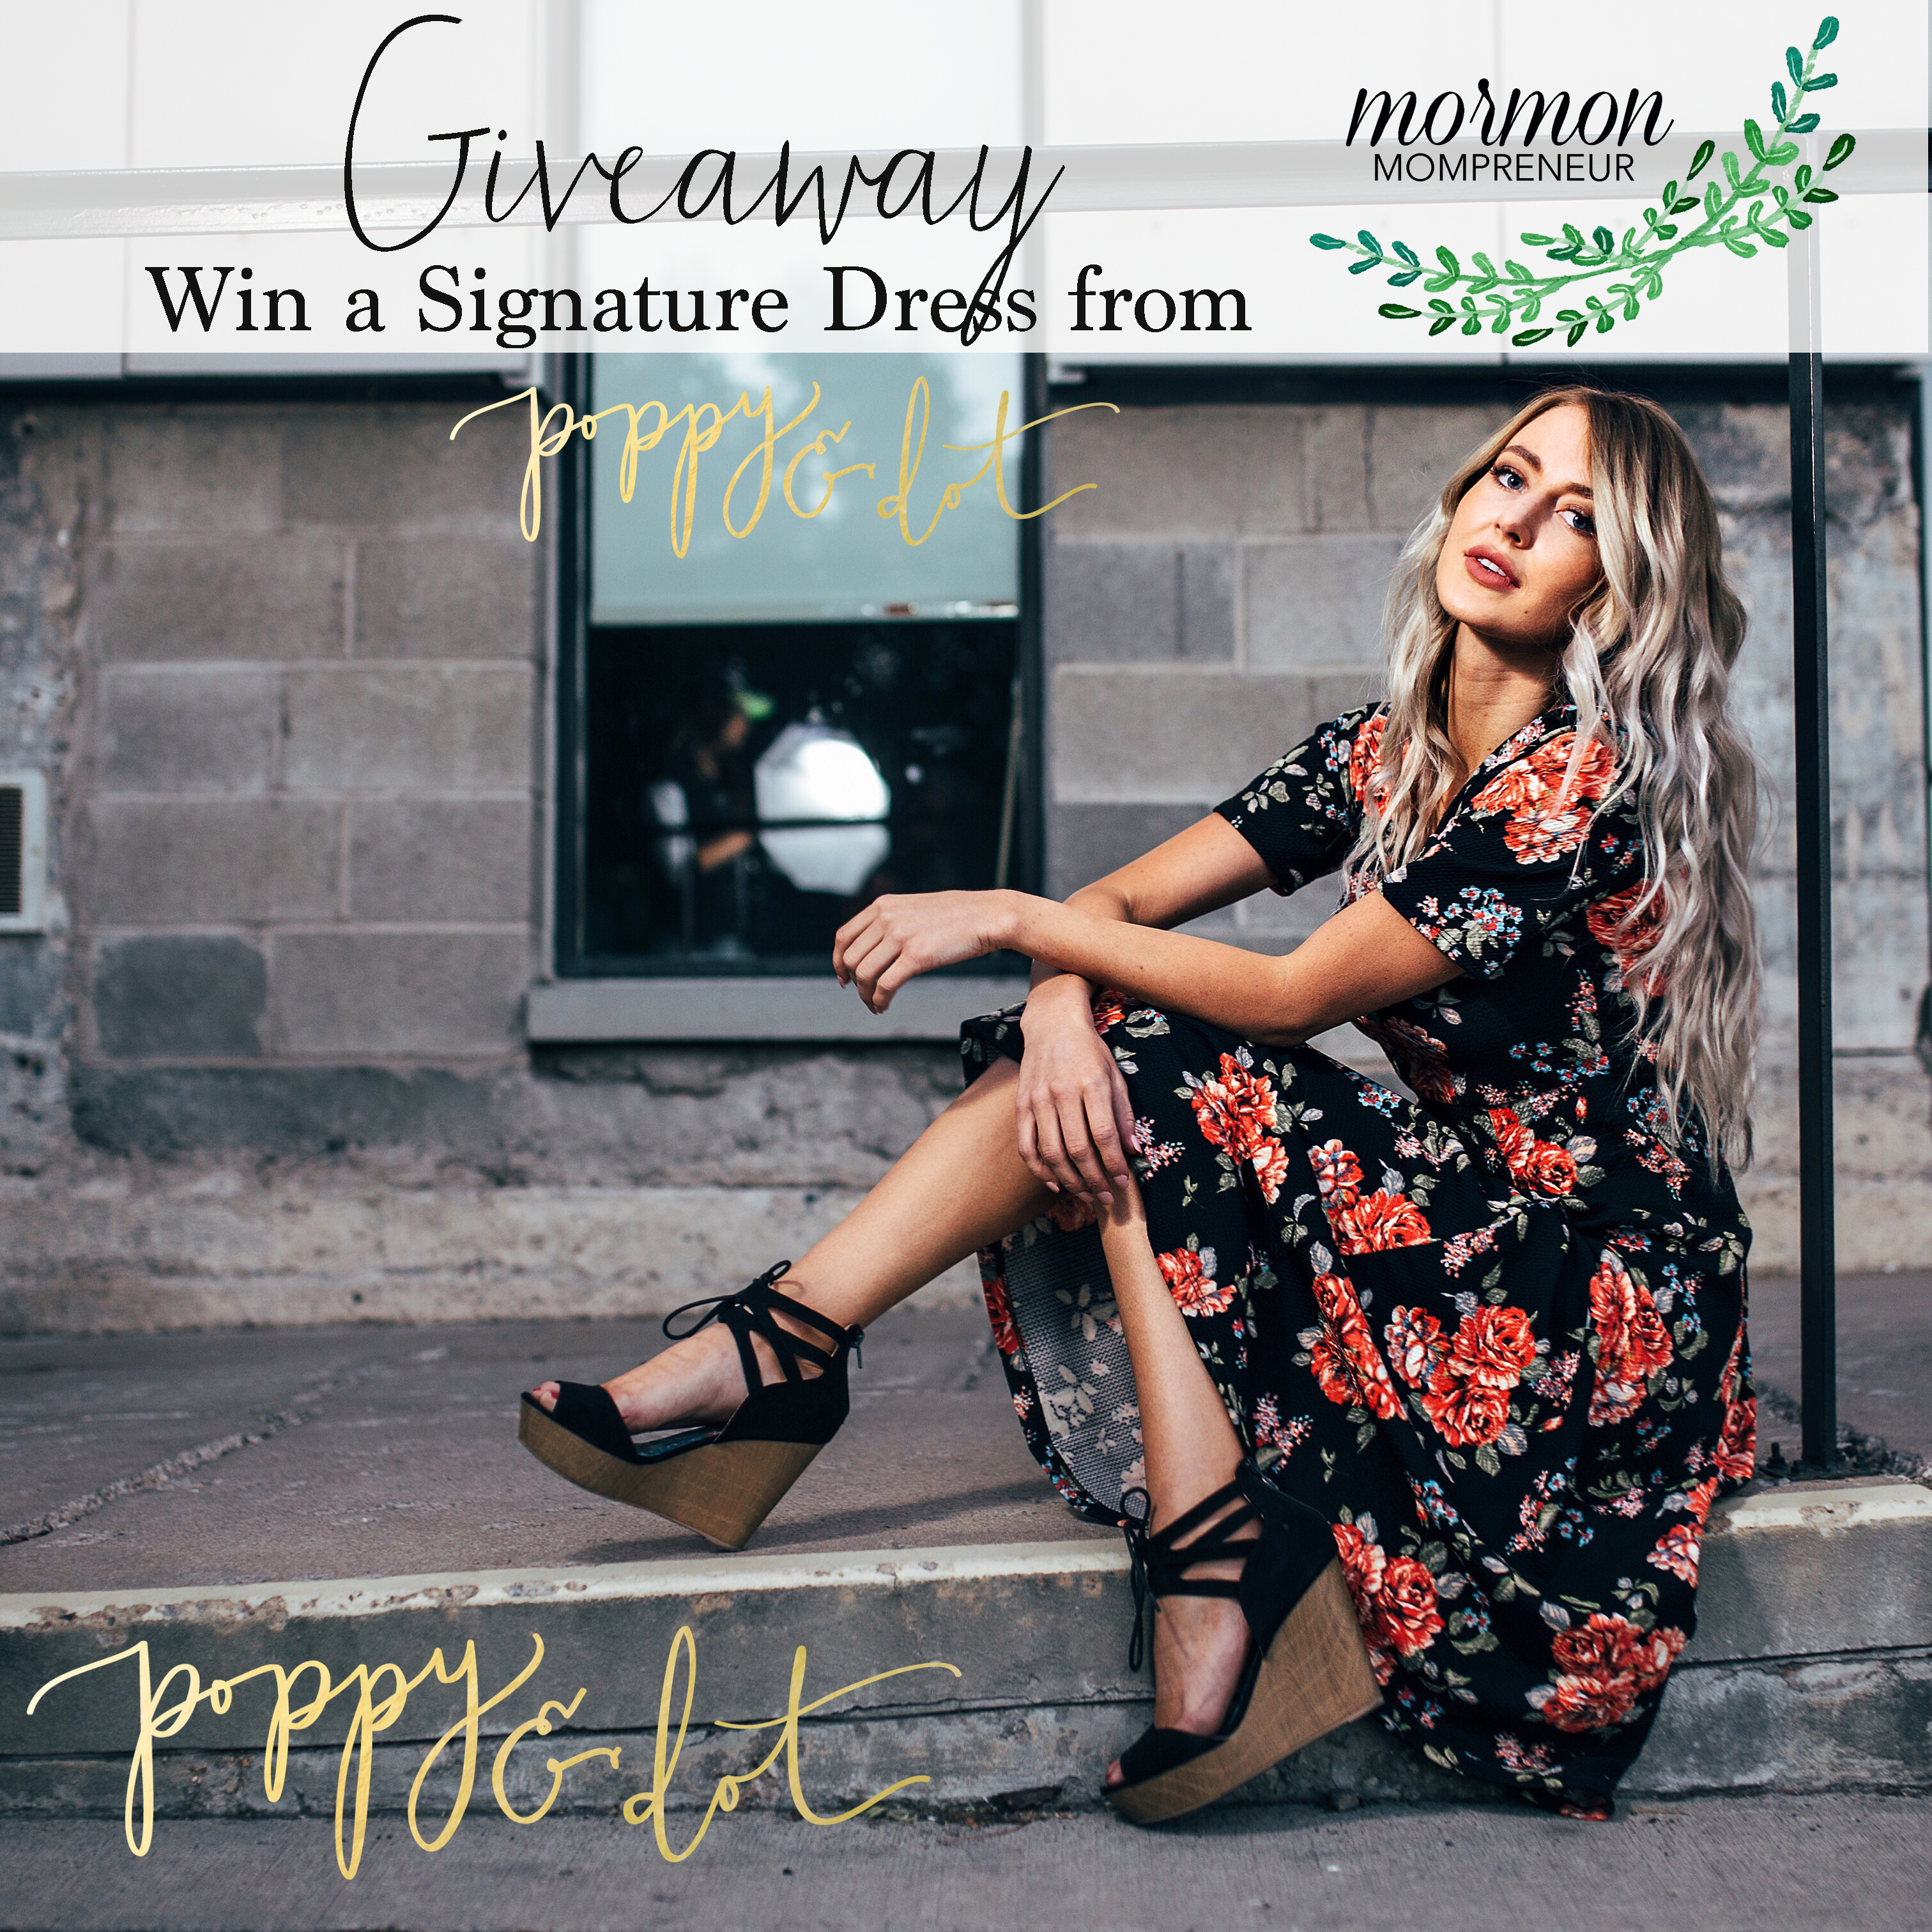 mm-poppy-and-dot-giveaway-image